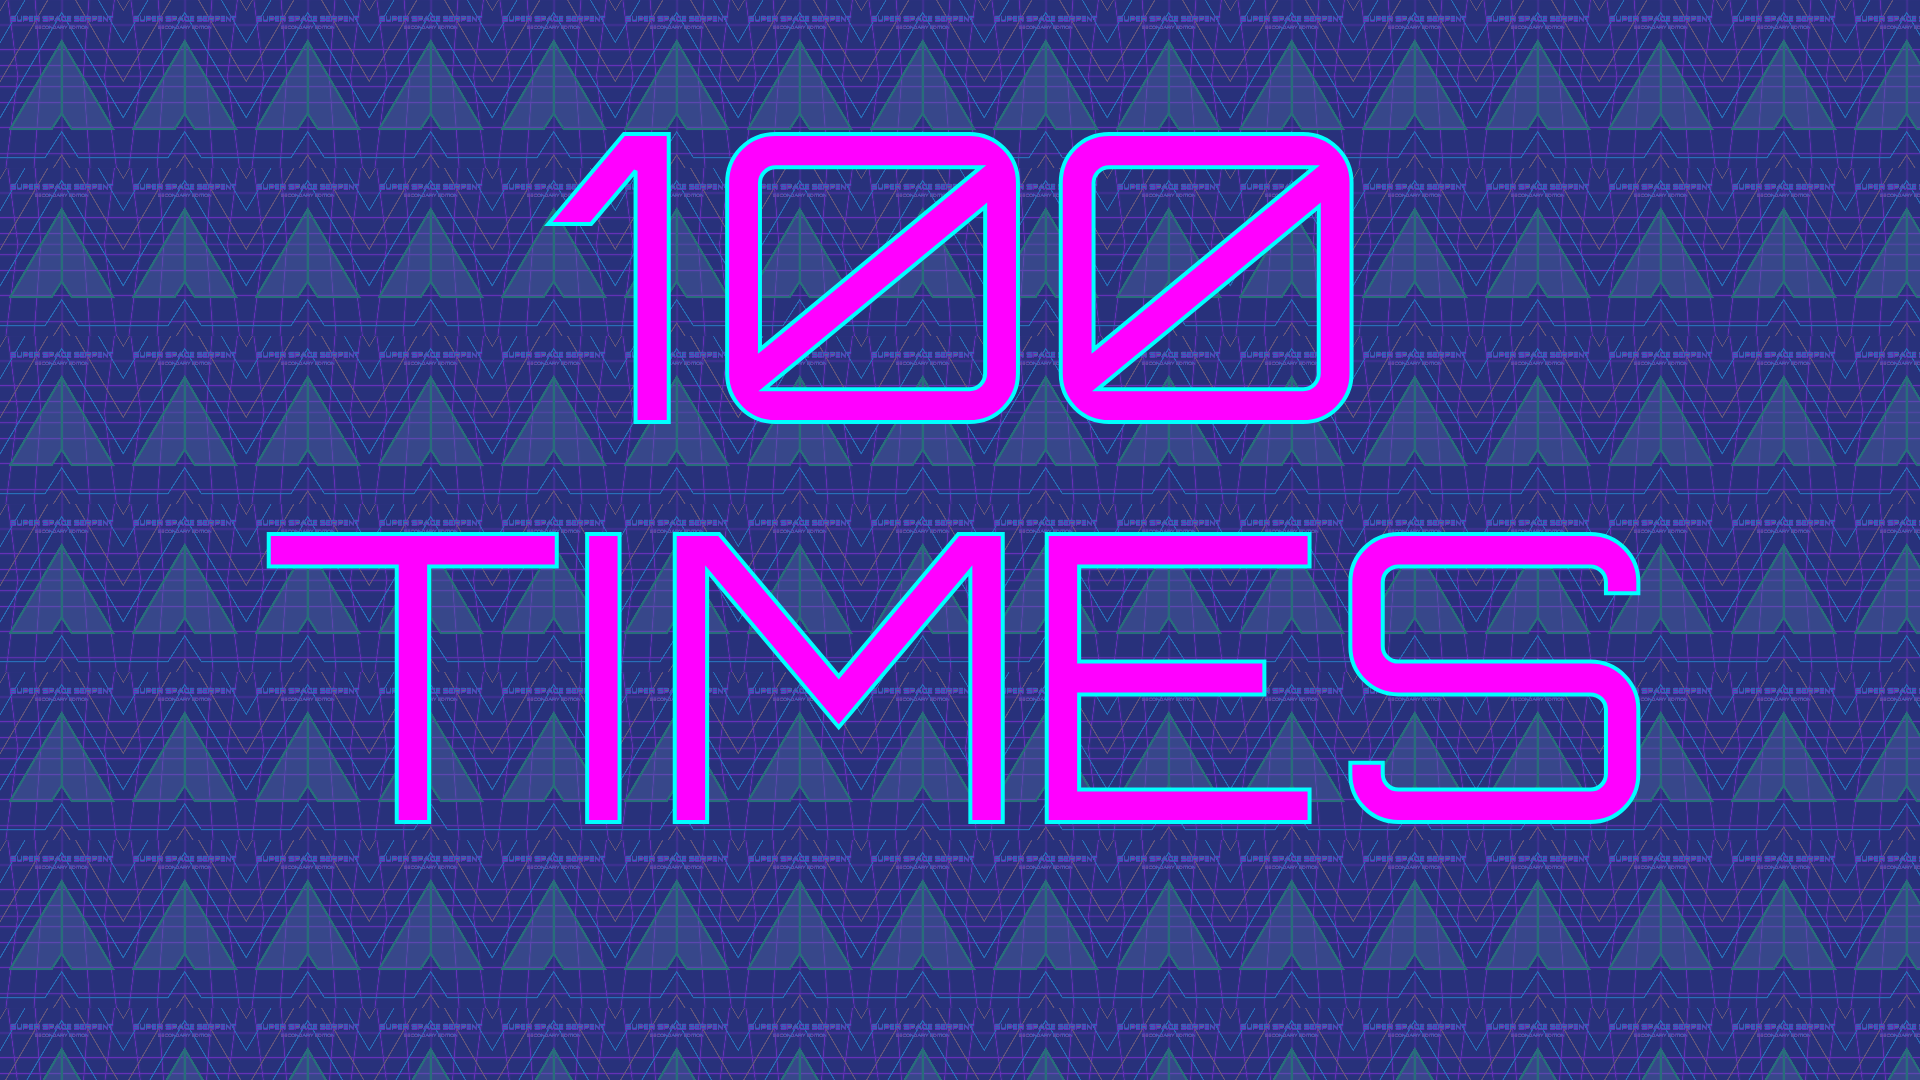 Icon for Played 100 times